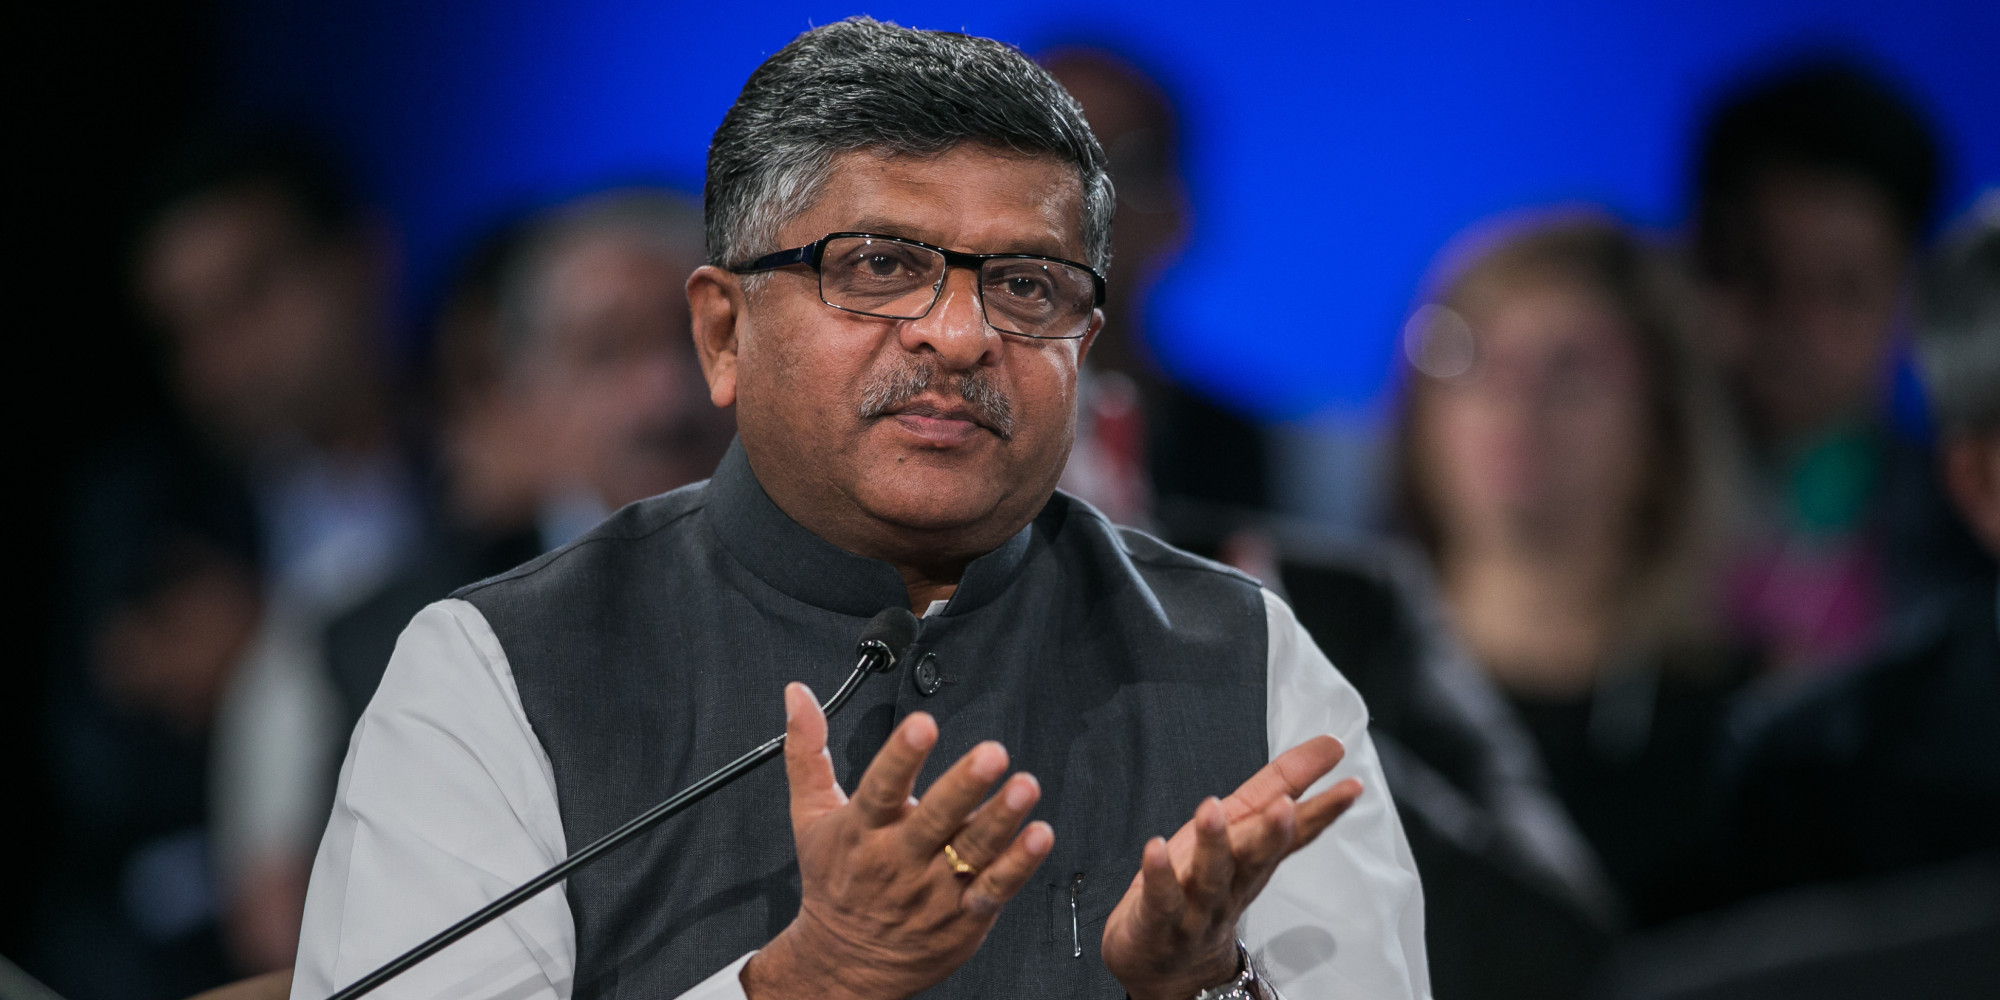 Ravi Shankar Prasad, Minister of Communications and Information Technology of India at the World Economic Forum - India Economic Summit 2014 in New Delhi, Copyright by World Economic Forum / Benedikt von Loebell